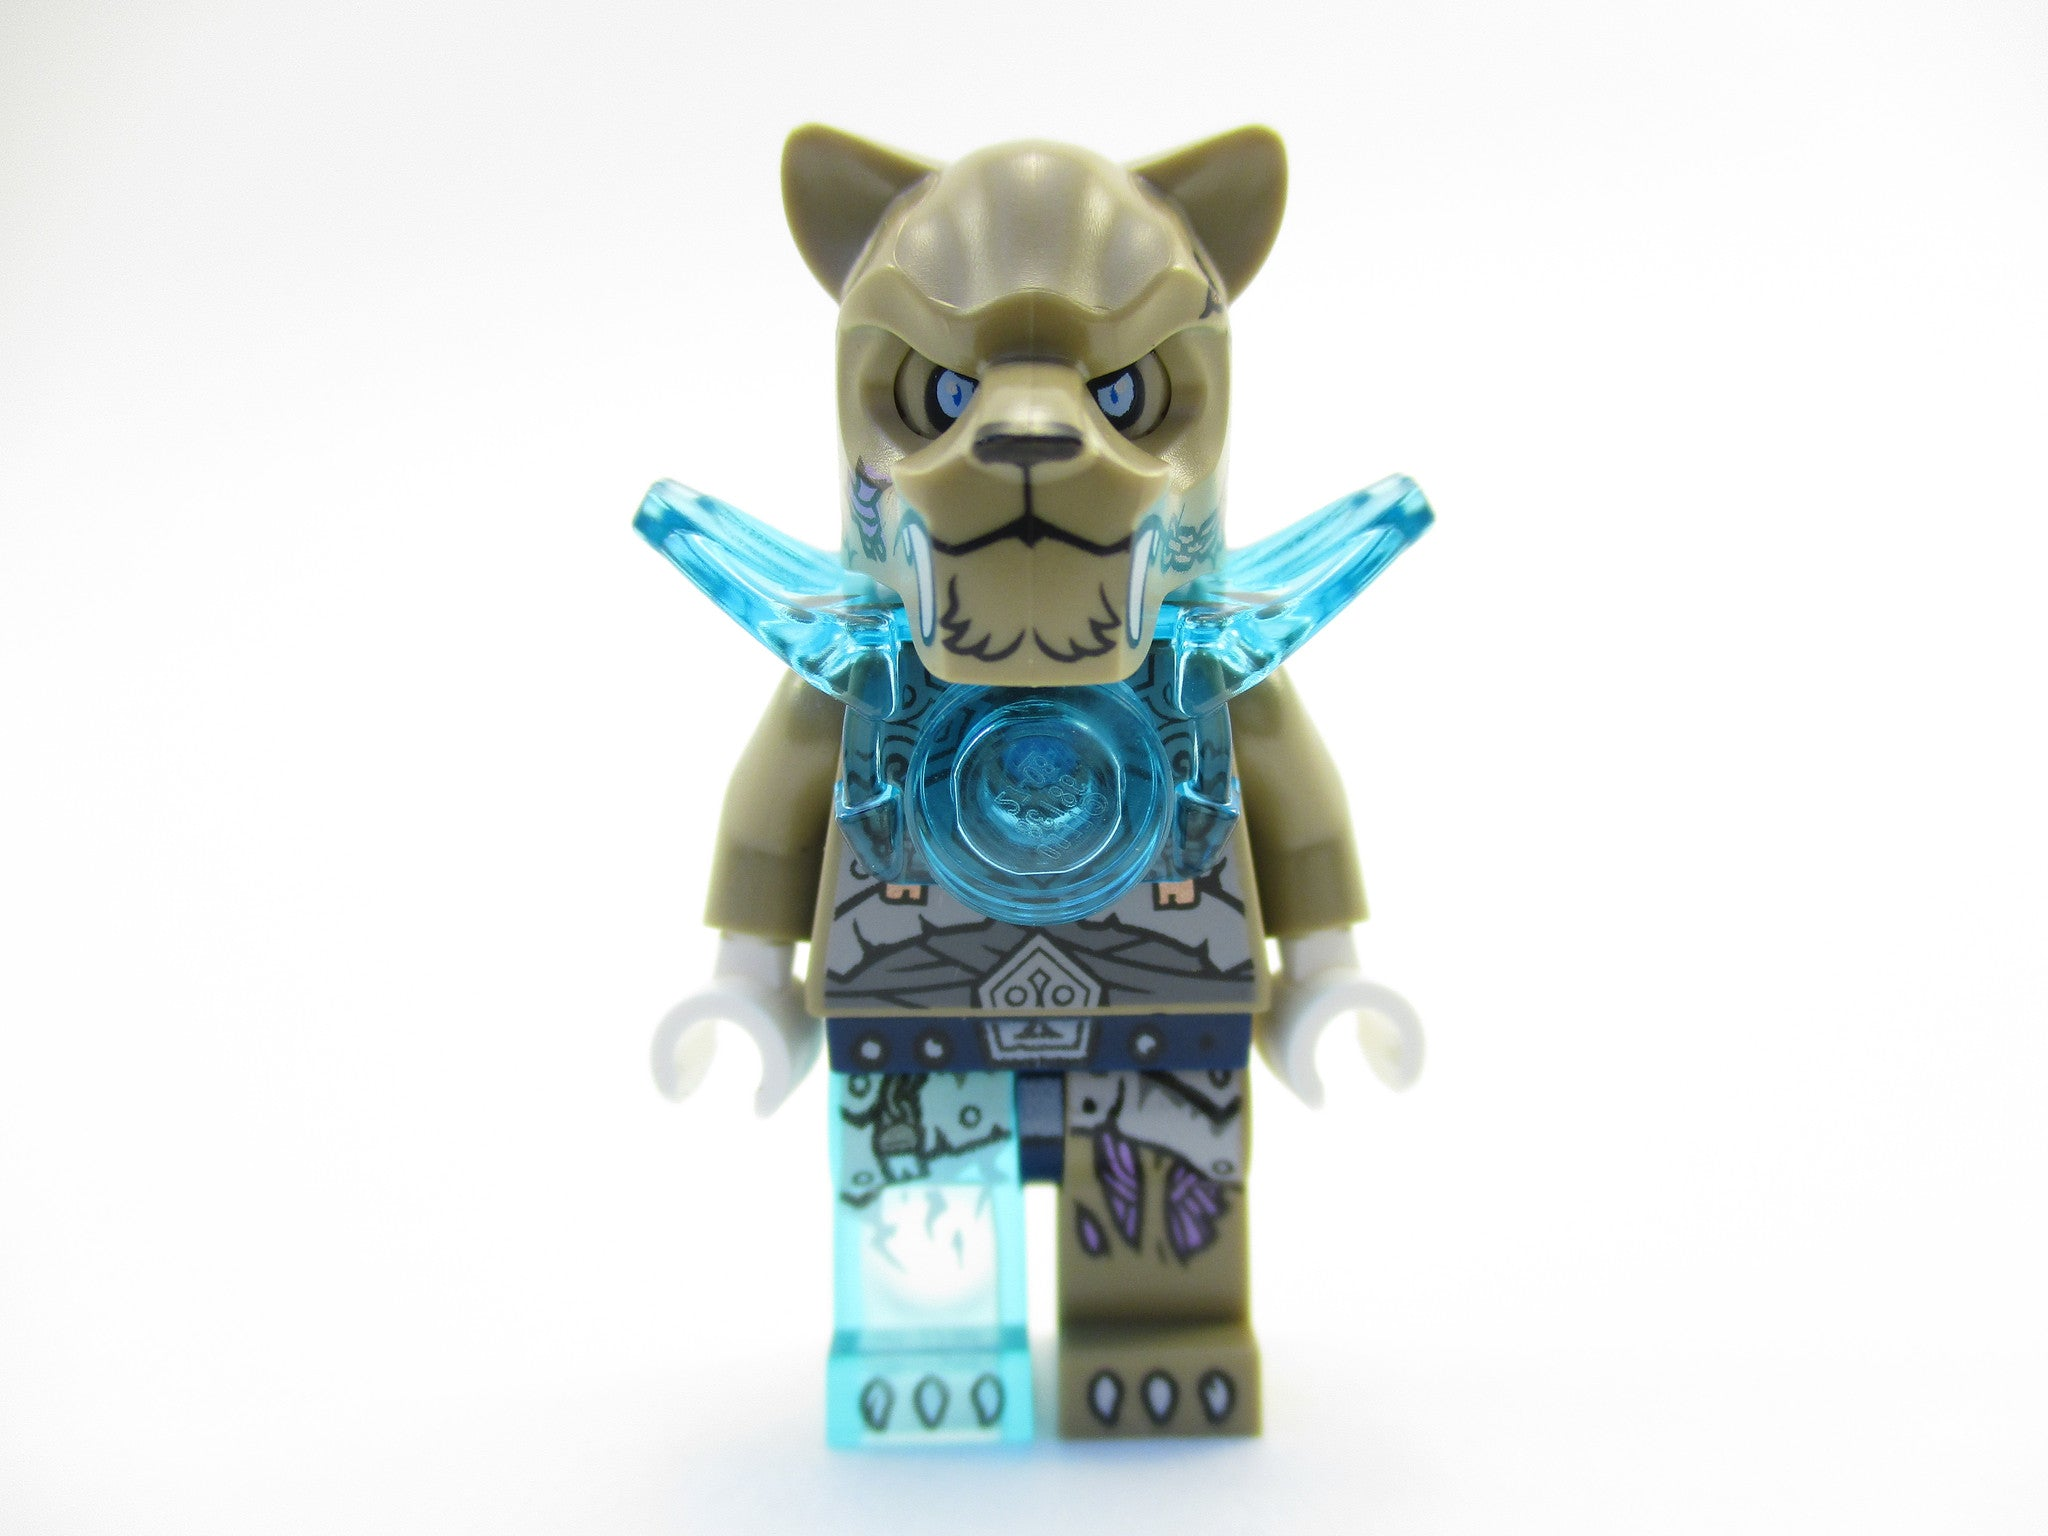 LEGO Legends of Chima Strainor Minifigure 70147 Mini Fig Saber Tooth Tribe